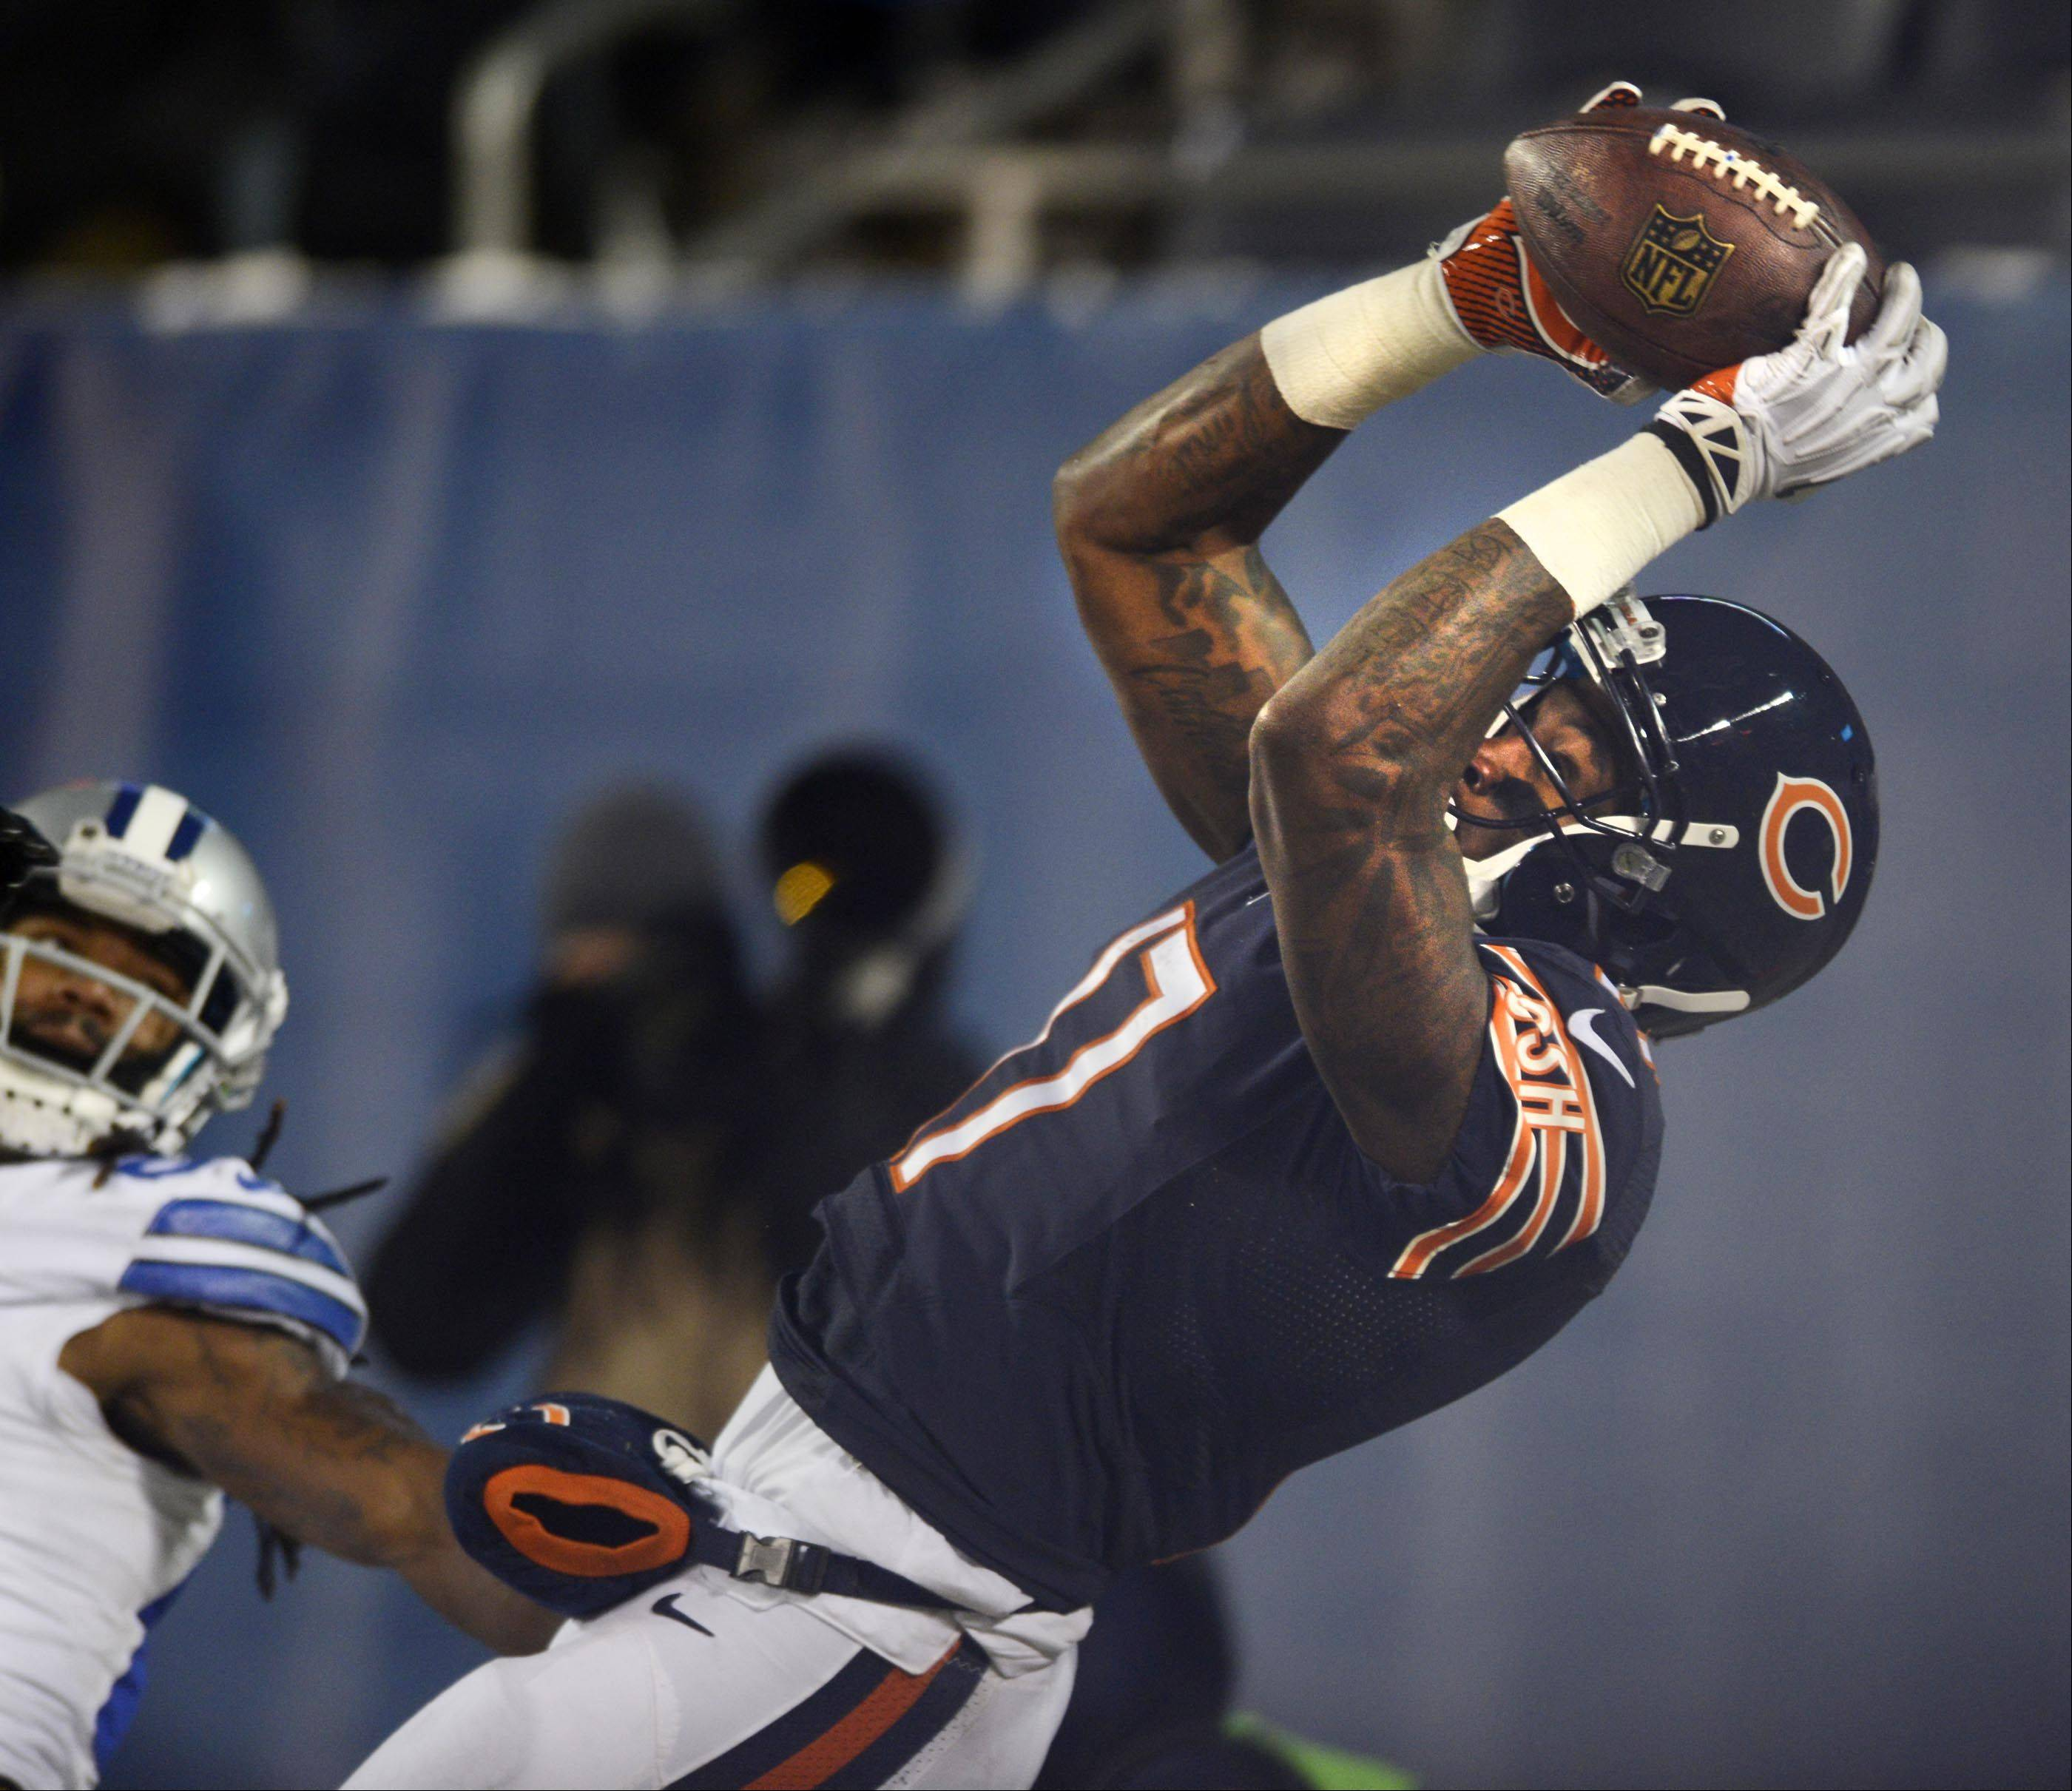 John Starks/jstarks@dailyherald.com ¬ Chicago Bears wide receiver Alshon Jeffery keeps his feet inbounds as he hauls in a late first half touchdown pass as Dallas Cowboys strong safety Jeff Heath covers Monday at Soldier Field in Chicago.